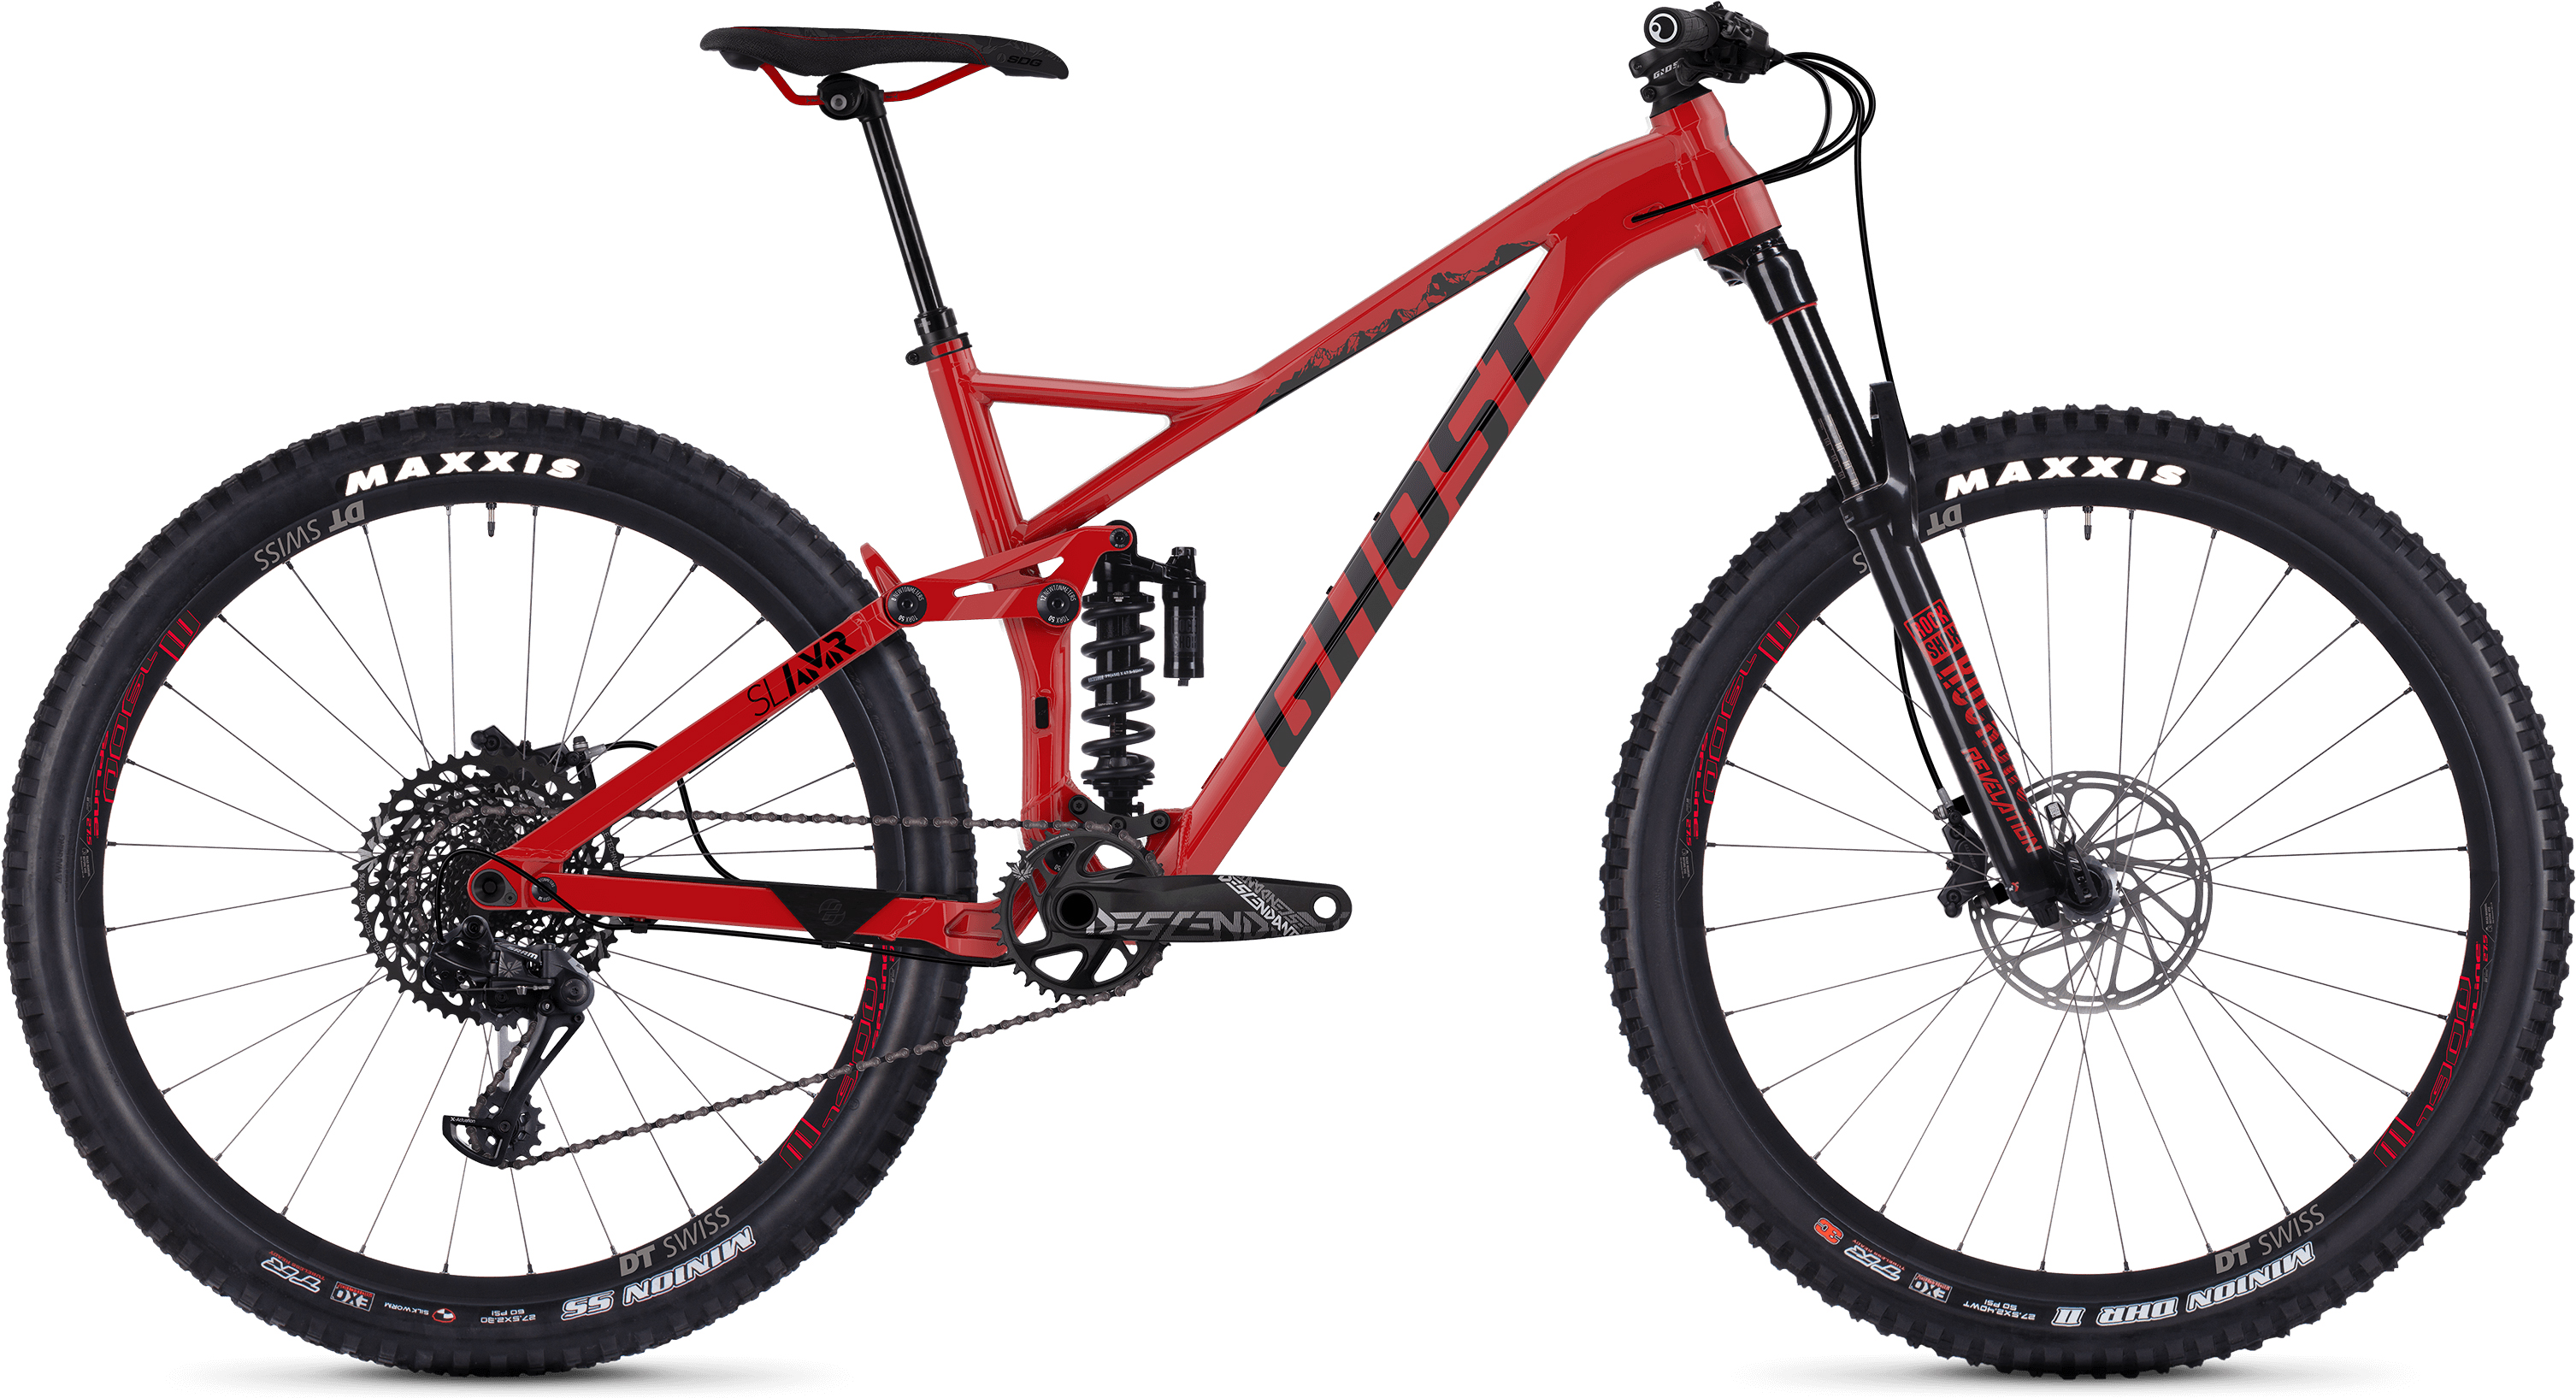 Ghost SL AMR 6.7 Fuldaffjedret mountainbike (2019) - Herre | Mountainbikes